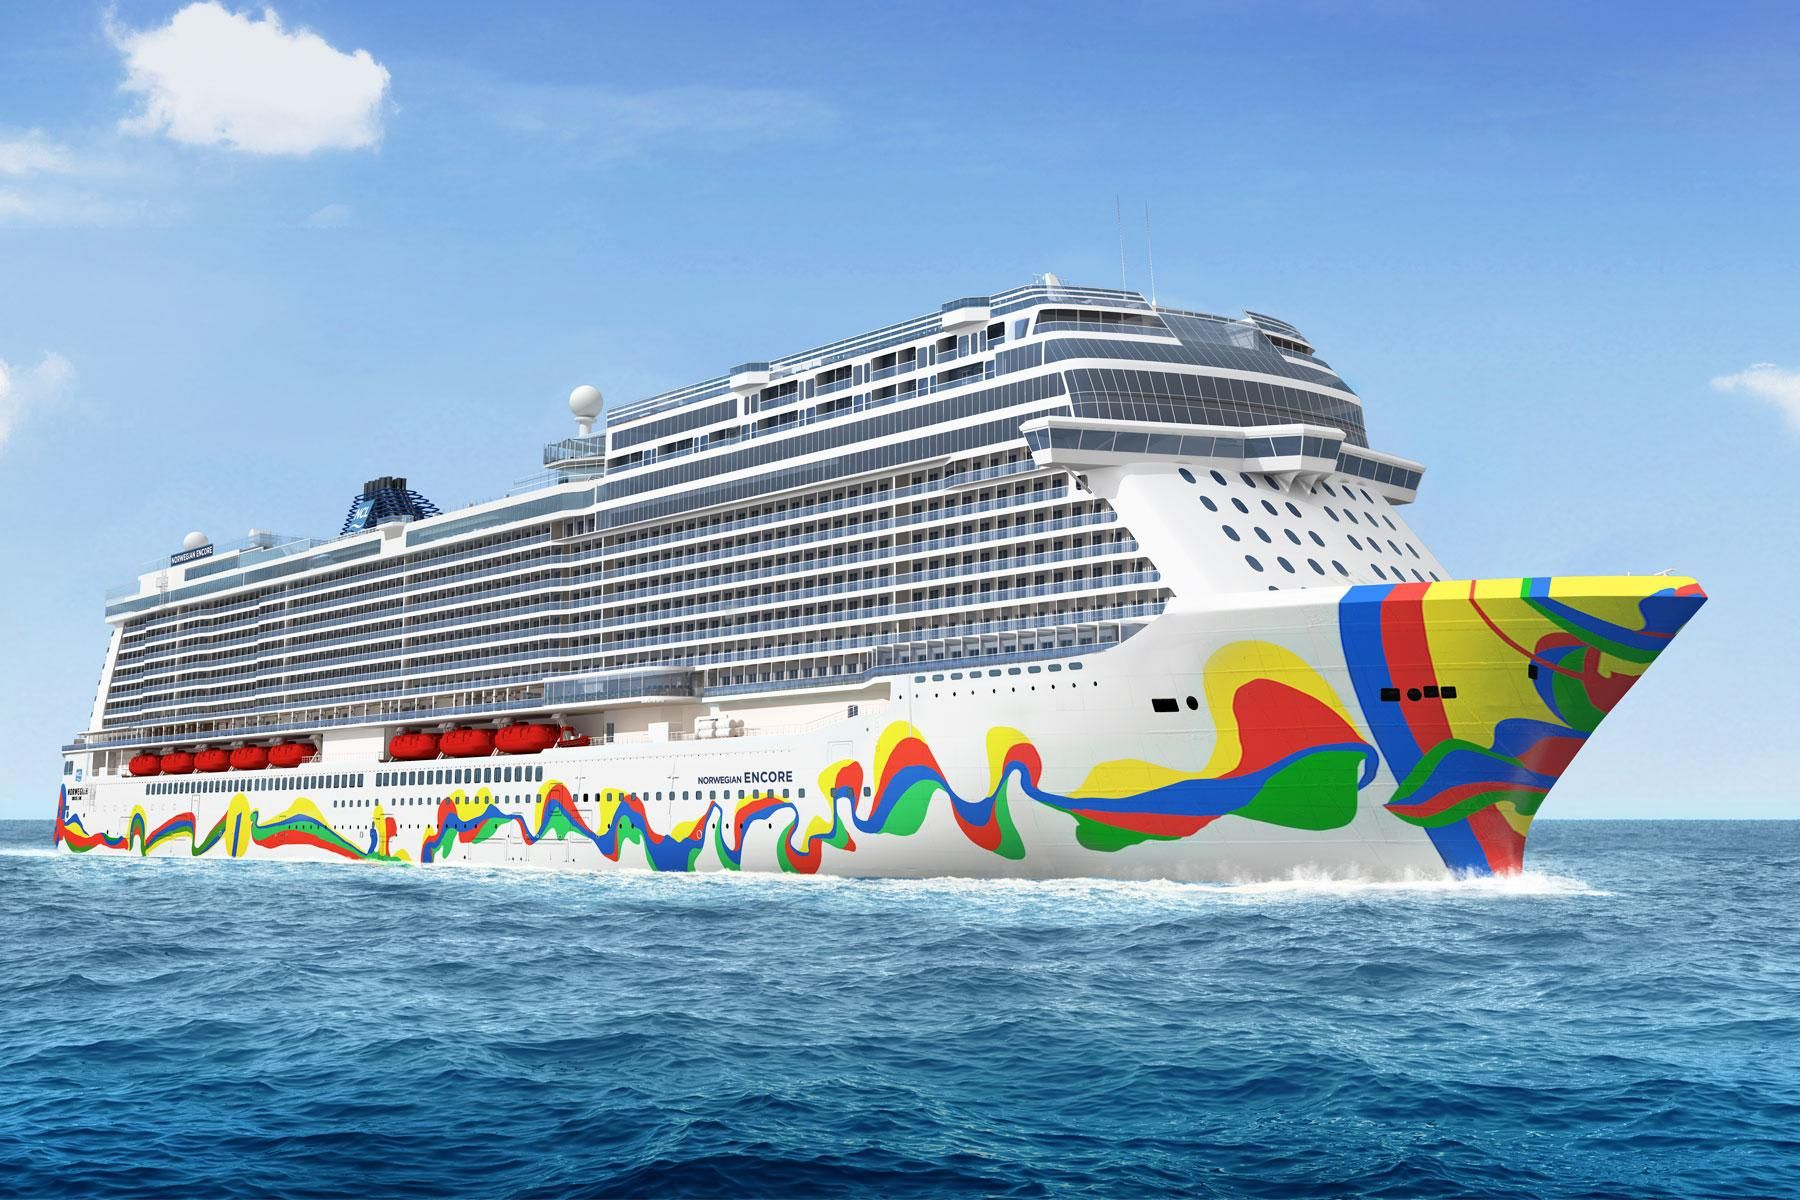 The Norwegian Encore Arrives In 2019 And Brings With It The